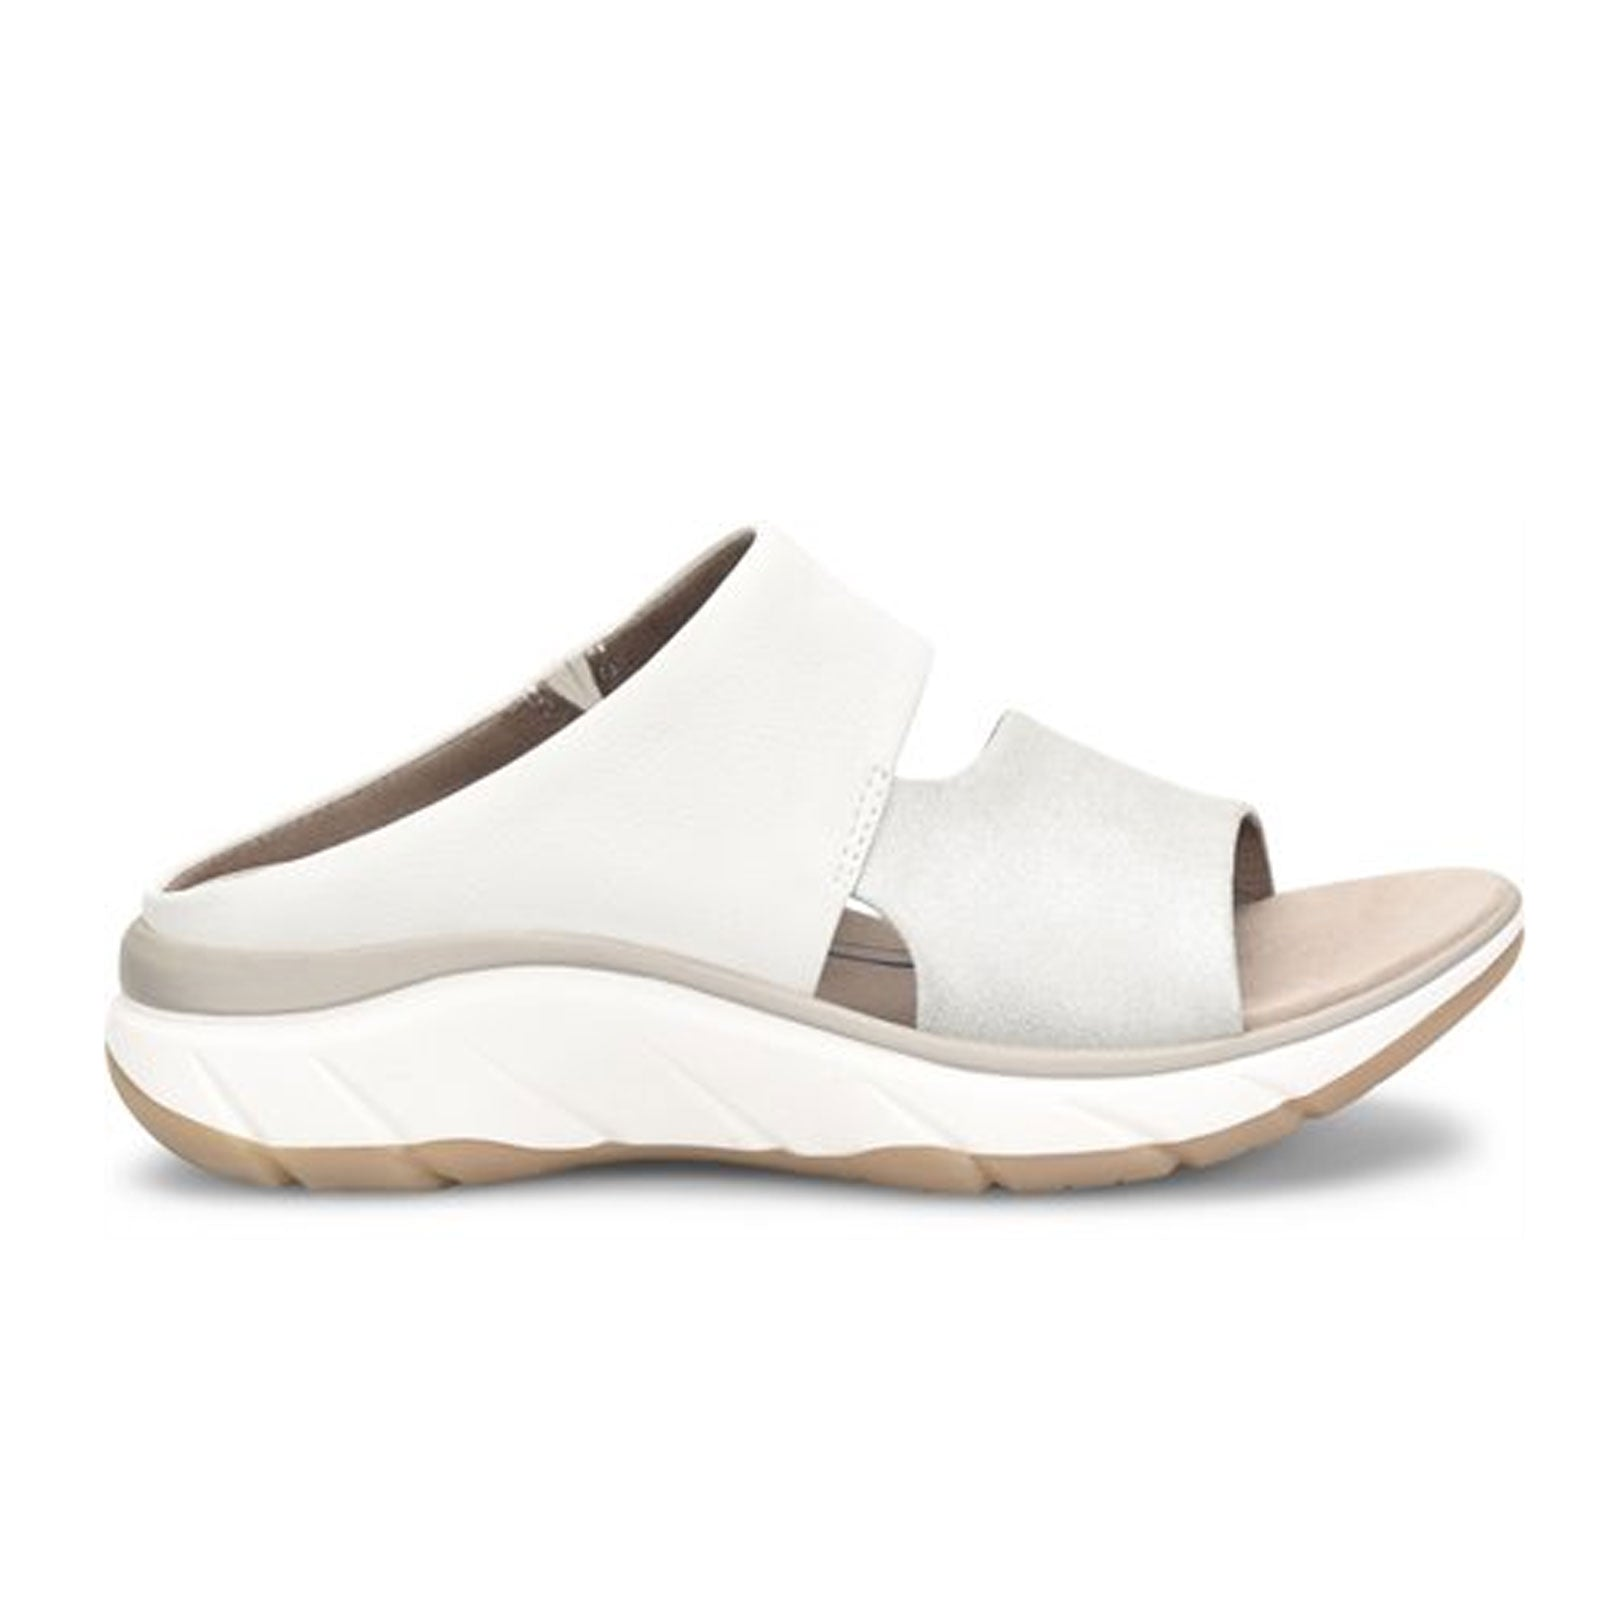 Bionica Airmont (Women) - Silver/White Sandals - Slide Sandals - The Heel Shoe Fitters